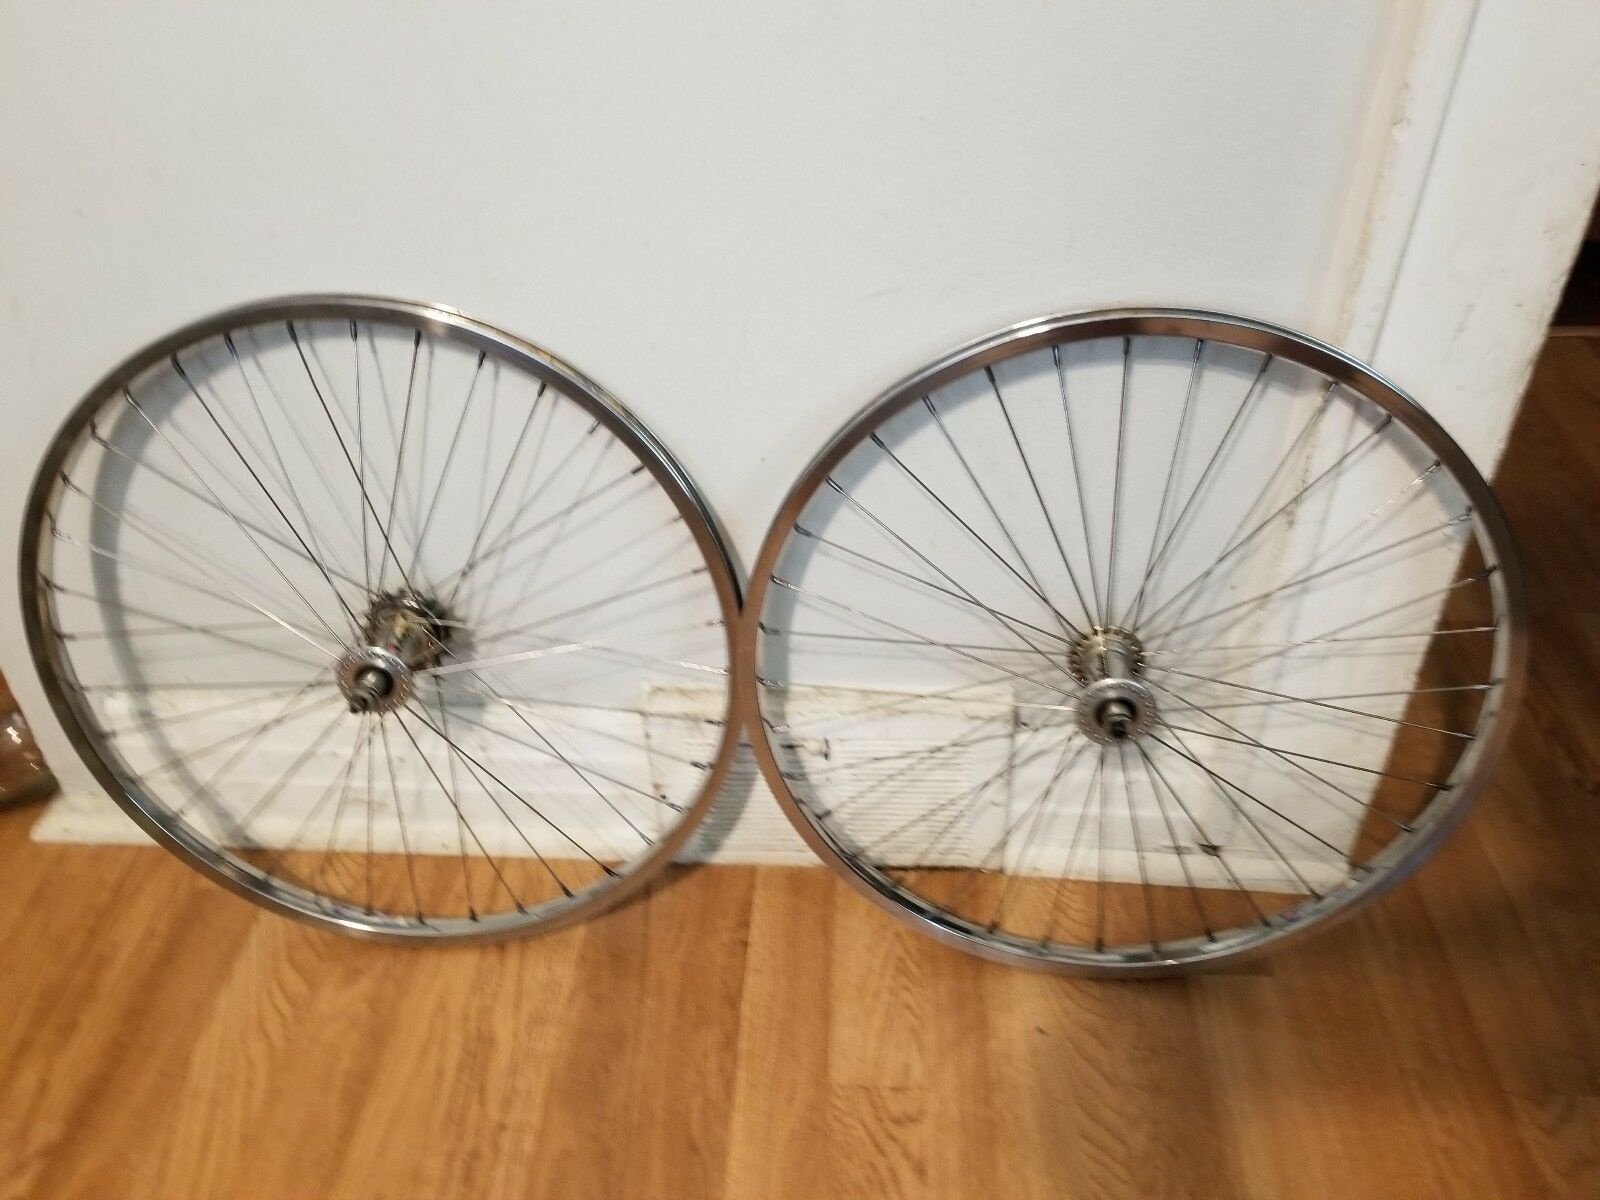 OLD  SCHOOL BMX 24  BULLSEYE CRUISER WHEELS SUN  NOOK 24X1.50 RIMS VINTAGE RARE  happy shopping